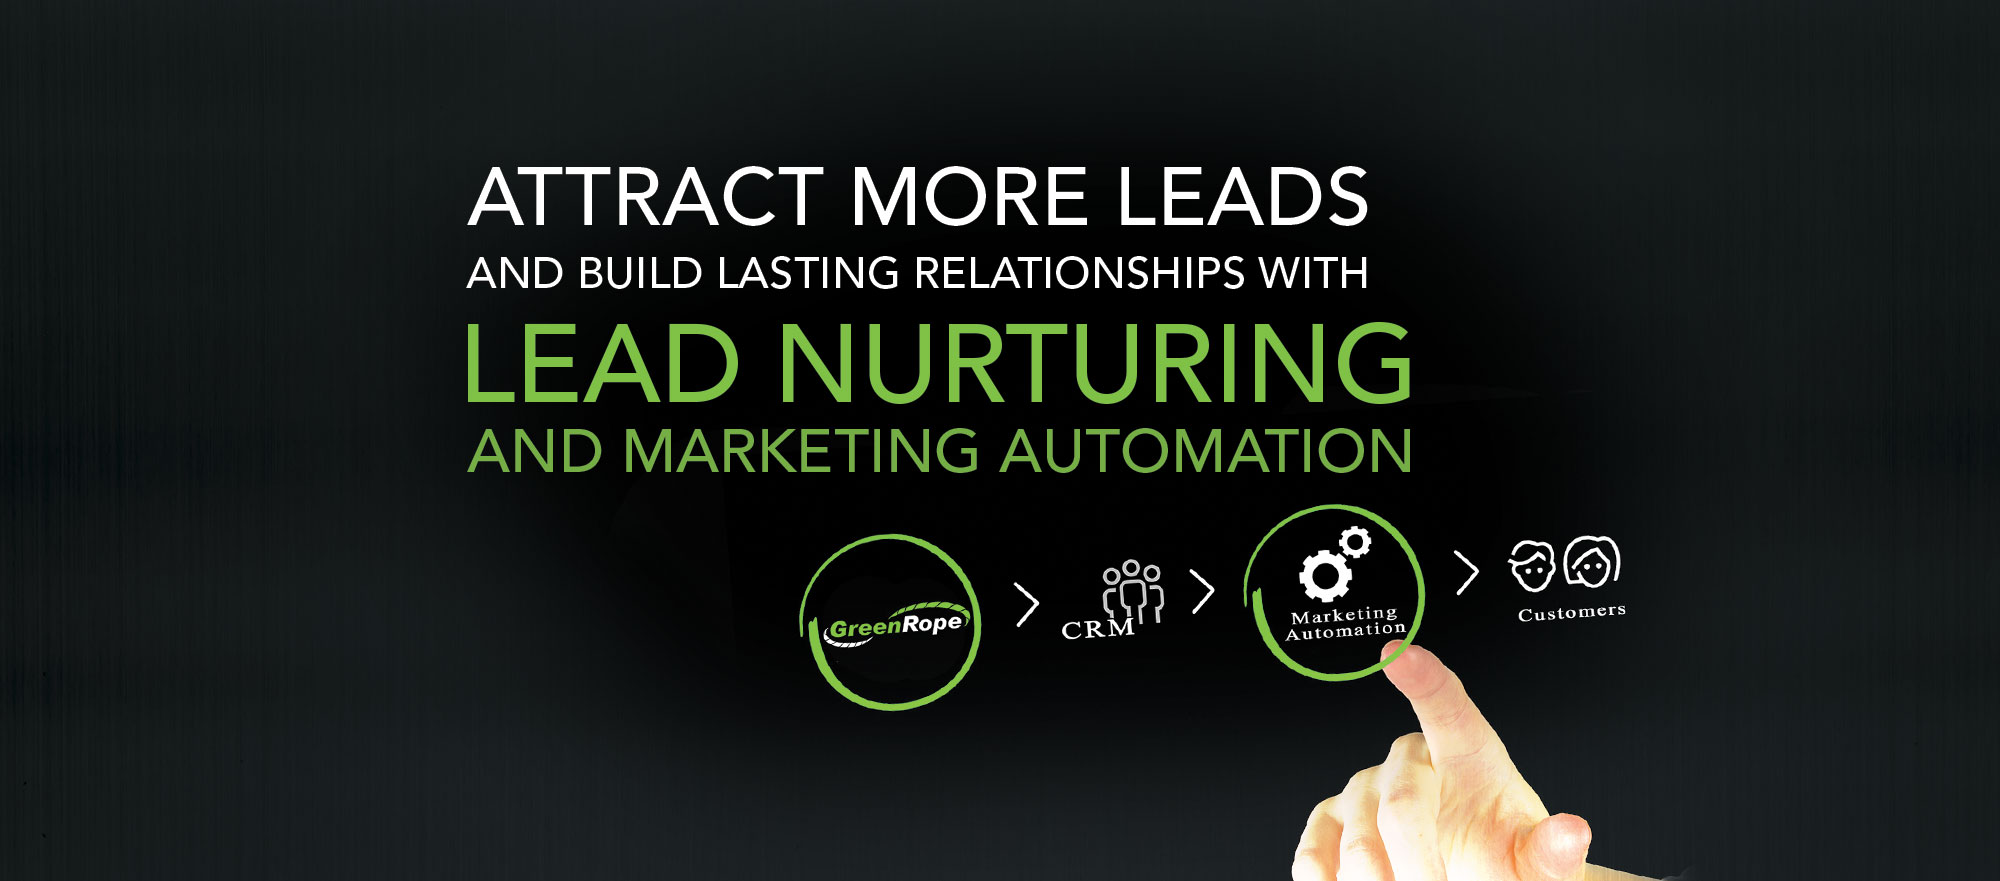 CRM Marketing Automation